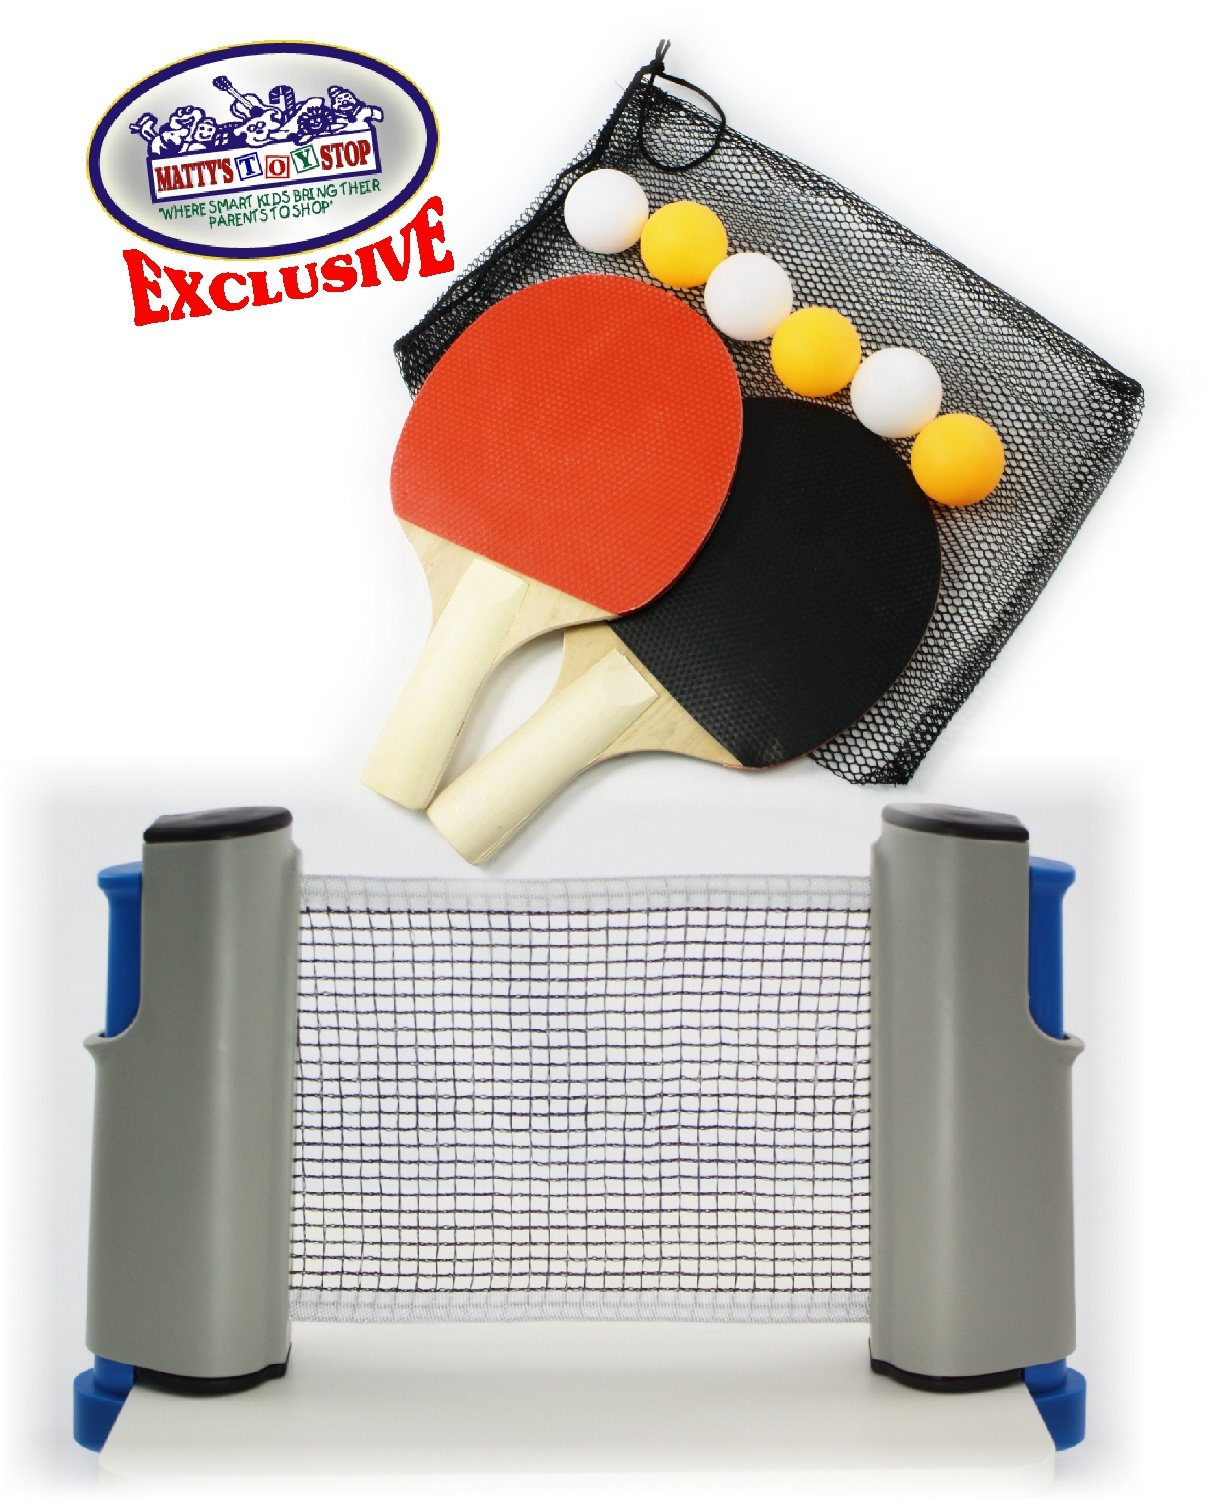 Matty's Toy Stop Deluxe Table Tennis (Ping Pong) To Go with Fully Adjustable Net, 2 Paddles, 6 Balls (3 Orange & 3 White) & Mesh Storage Bag by Matty's Toy Stop (Image #4)